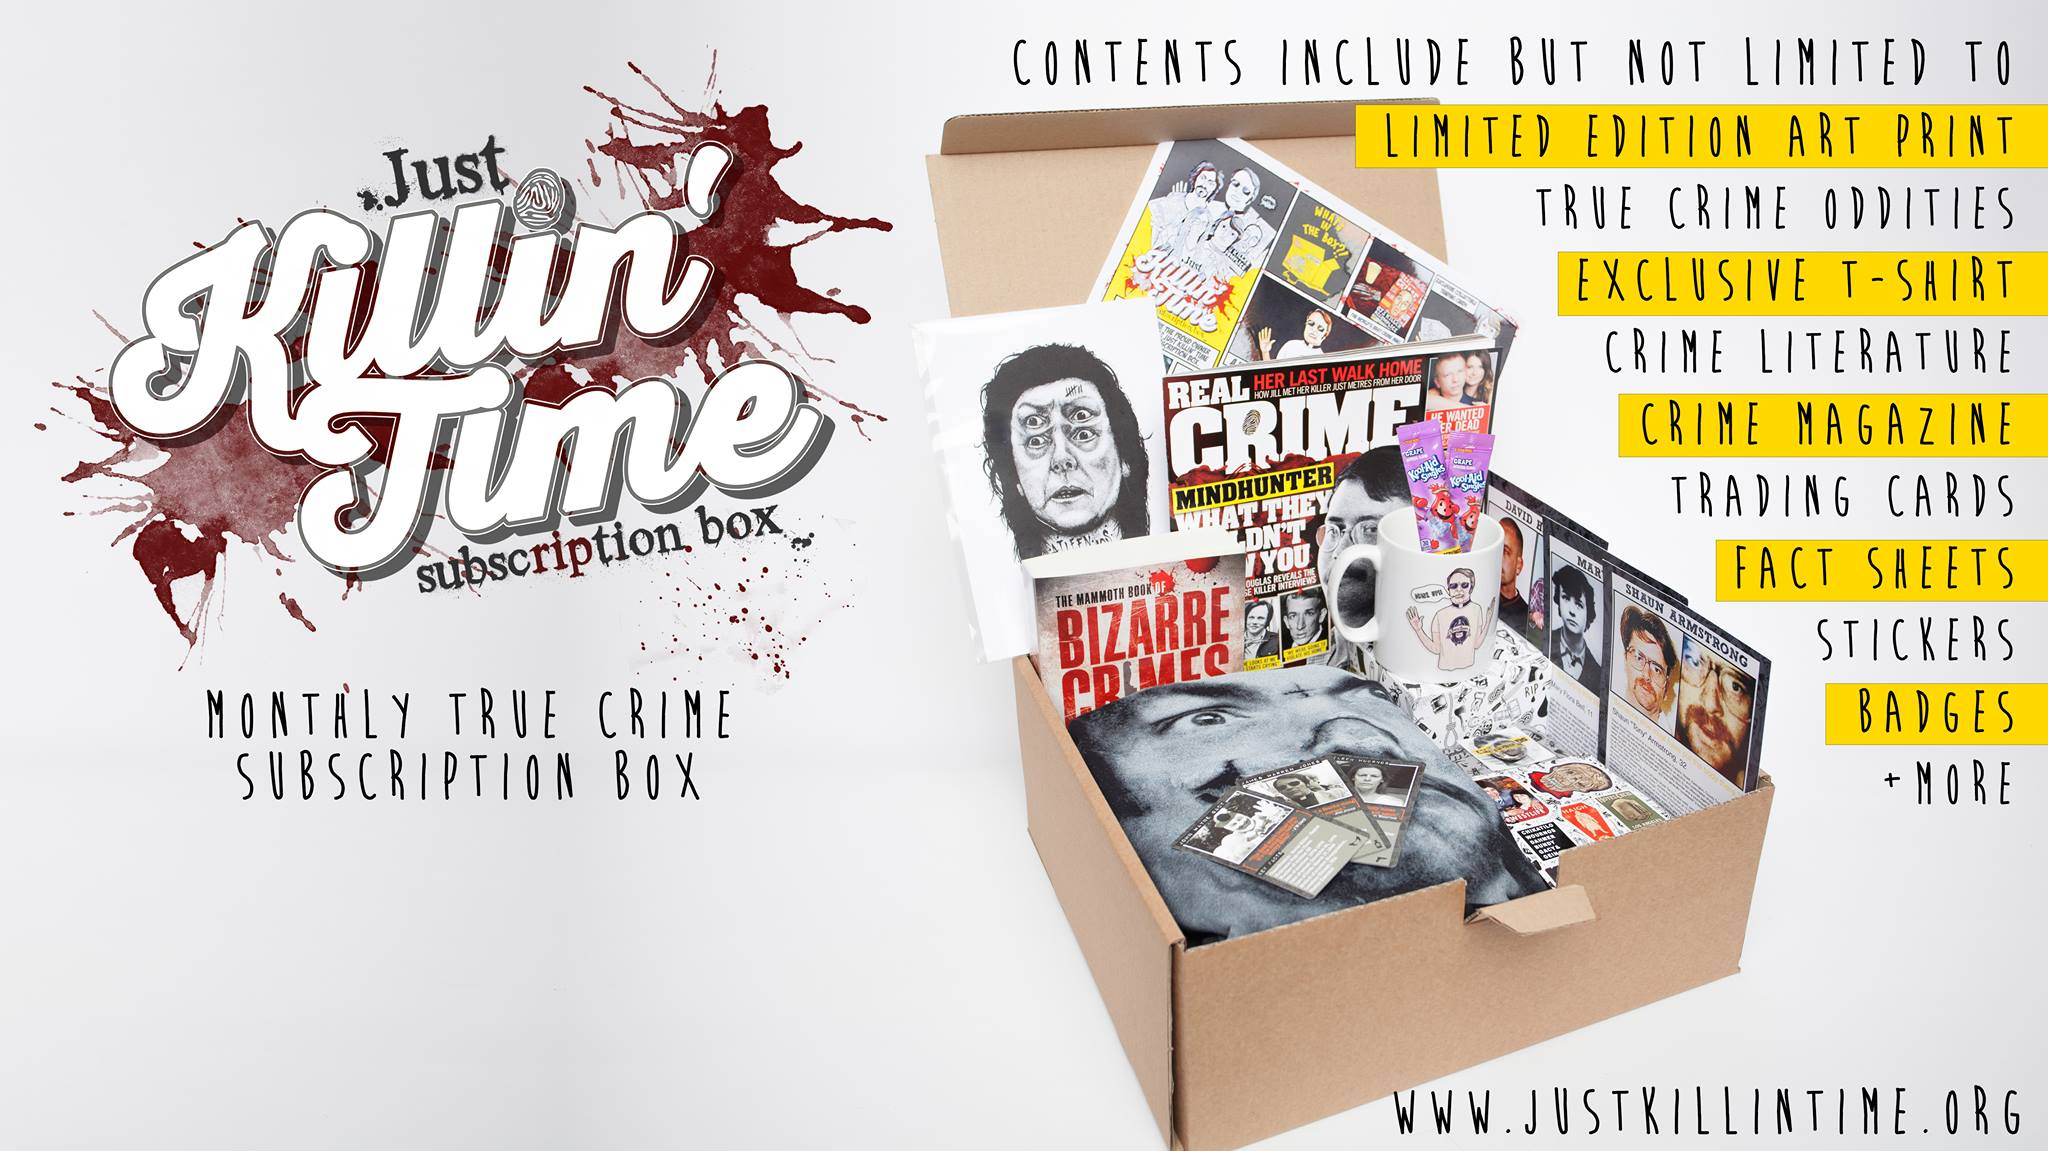 An example of whats available in the Just Killin' Time subscription boxes